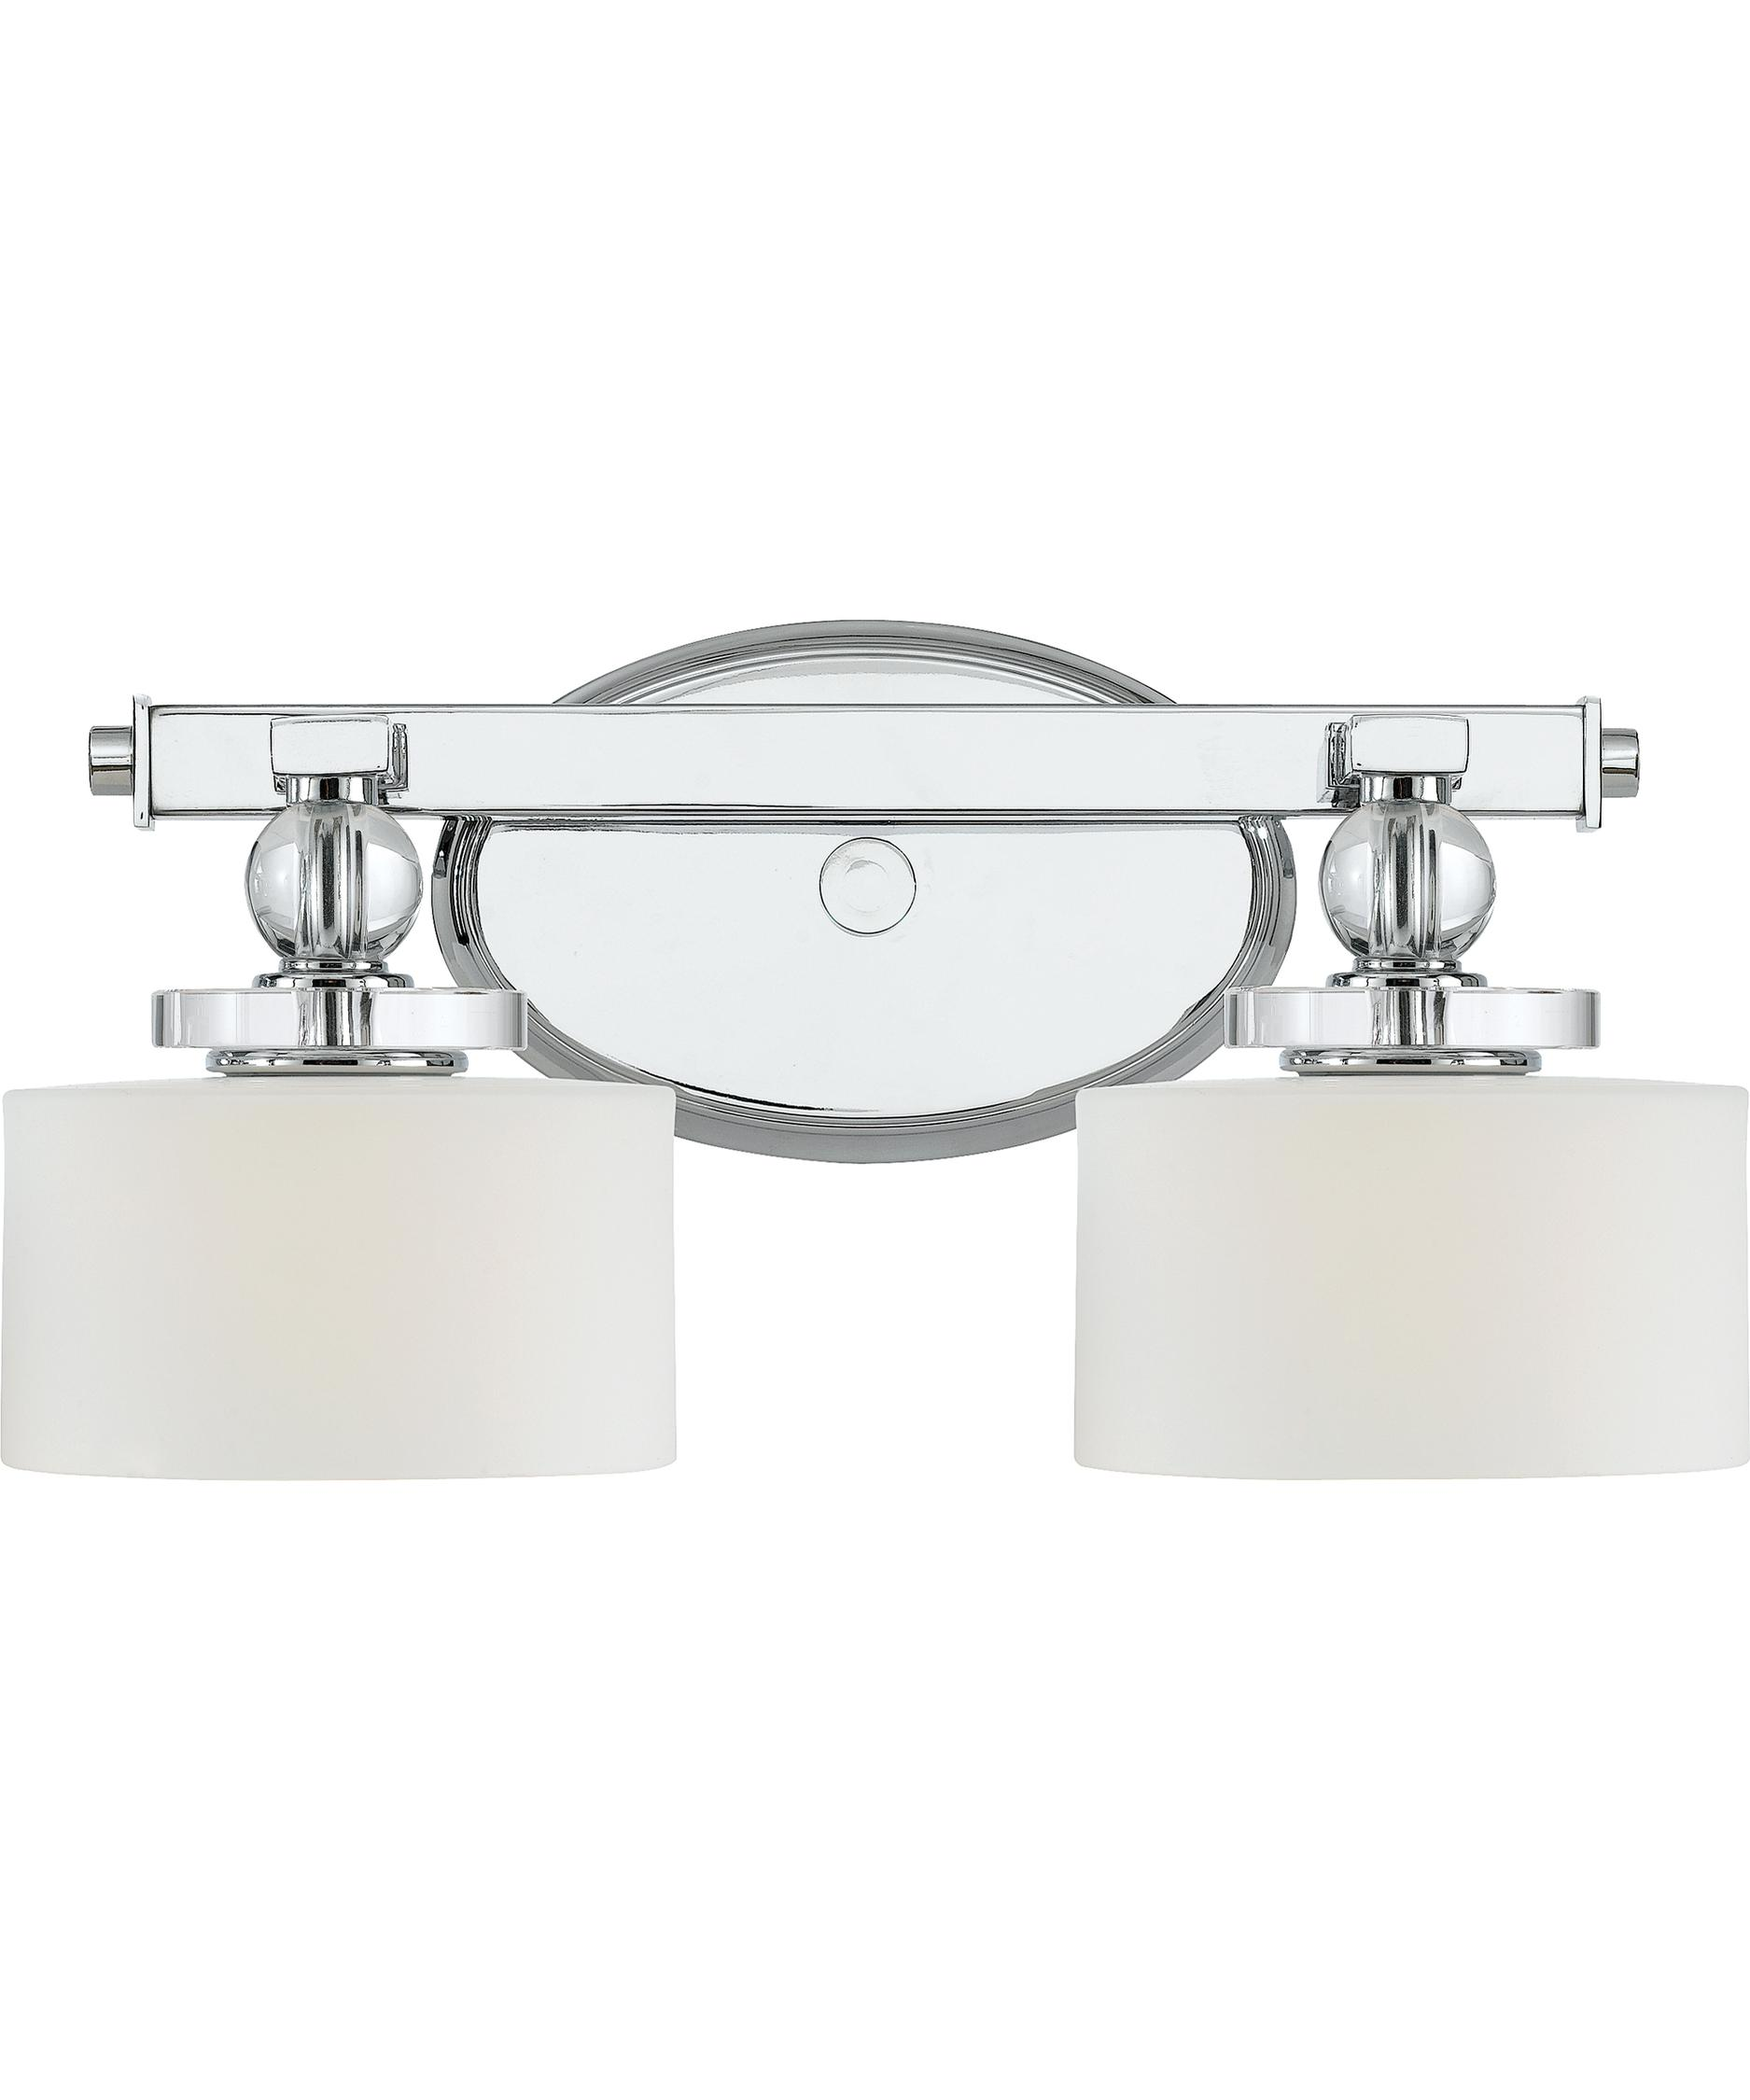 Quoizel Downtown 15 Inch Bath Vanity Light Capitol Lighting 1